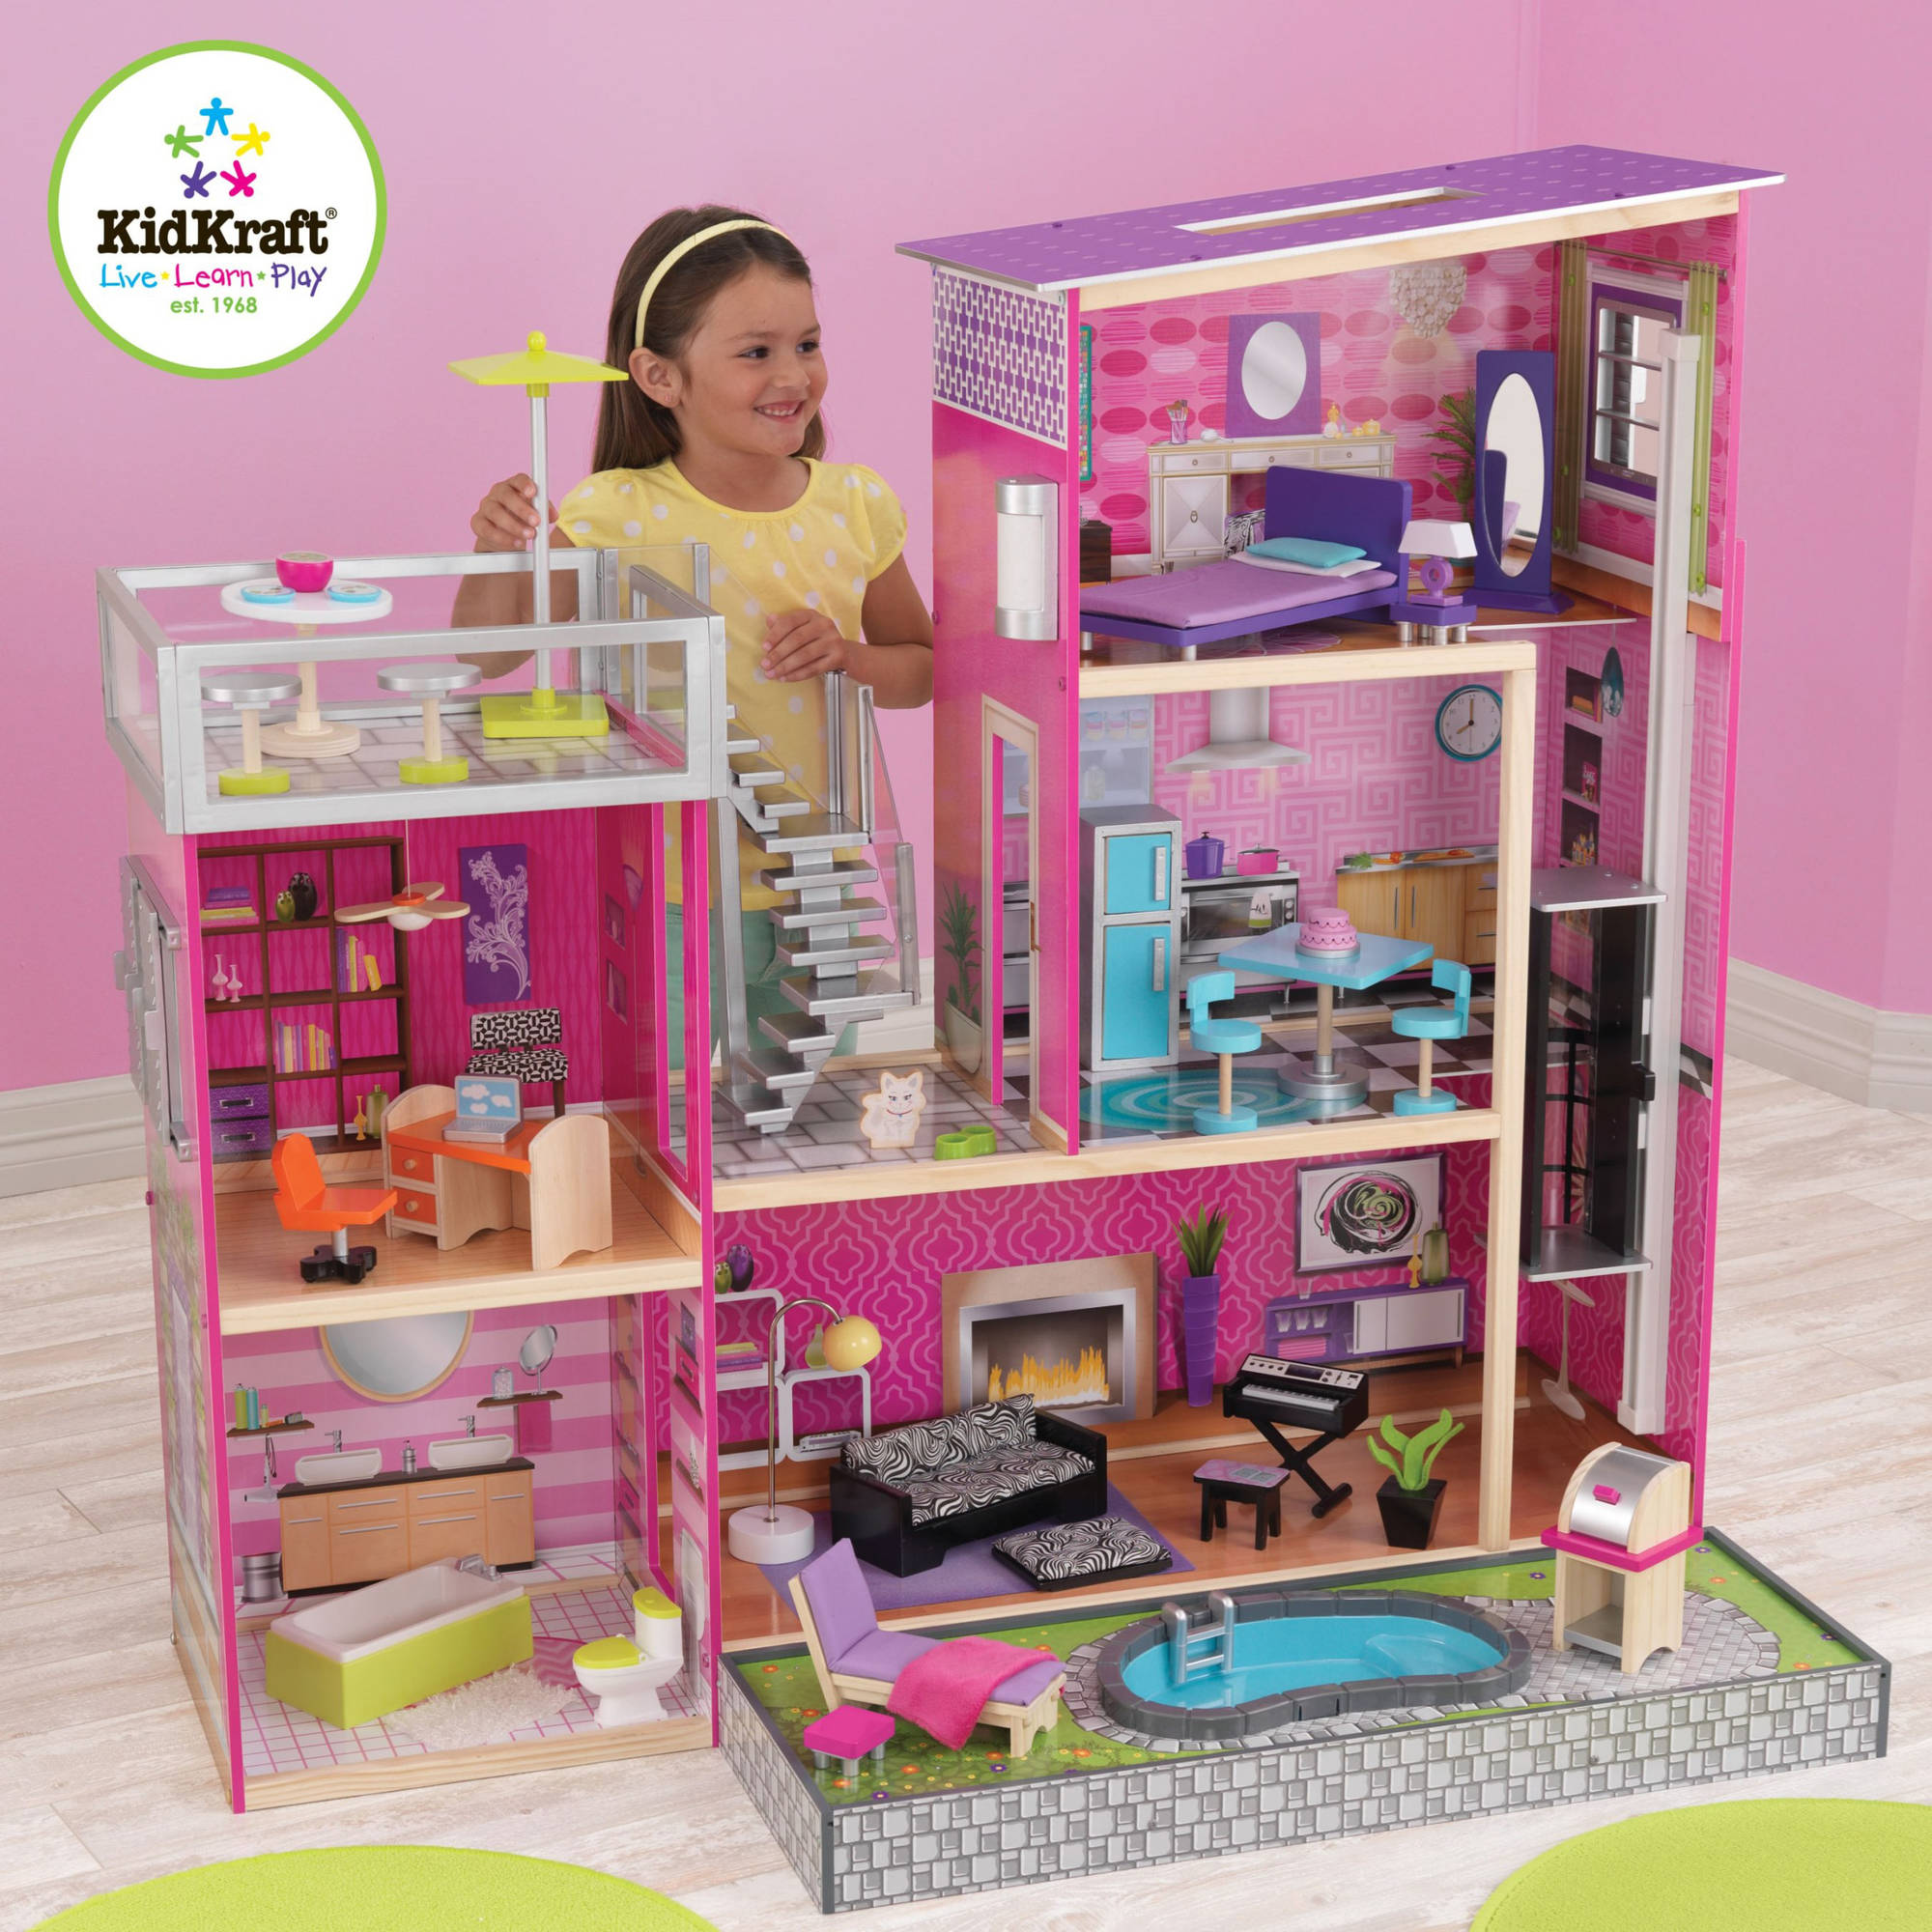 KidKraft Uptown Wooden Dollhouse With 35 Pieces Of Furniture | EBay